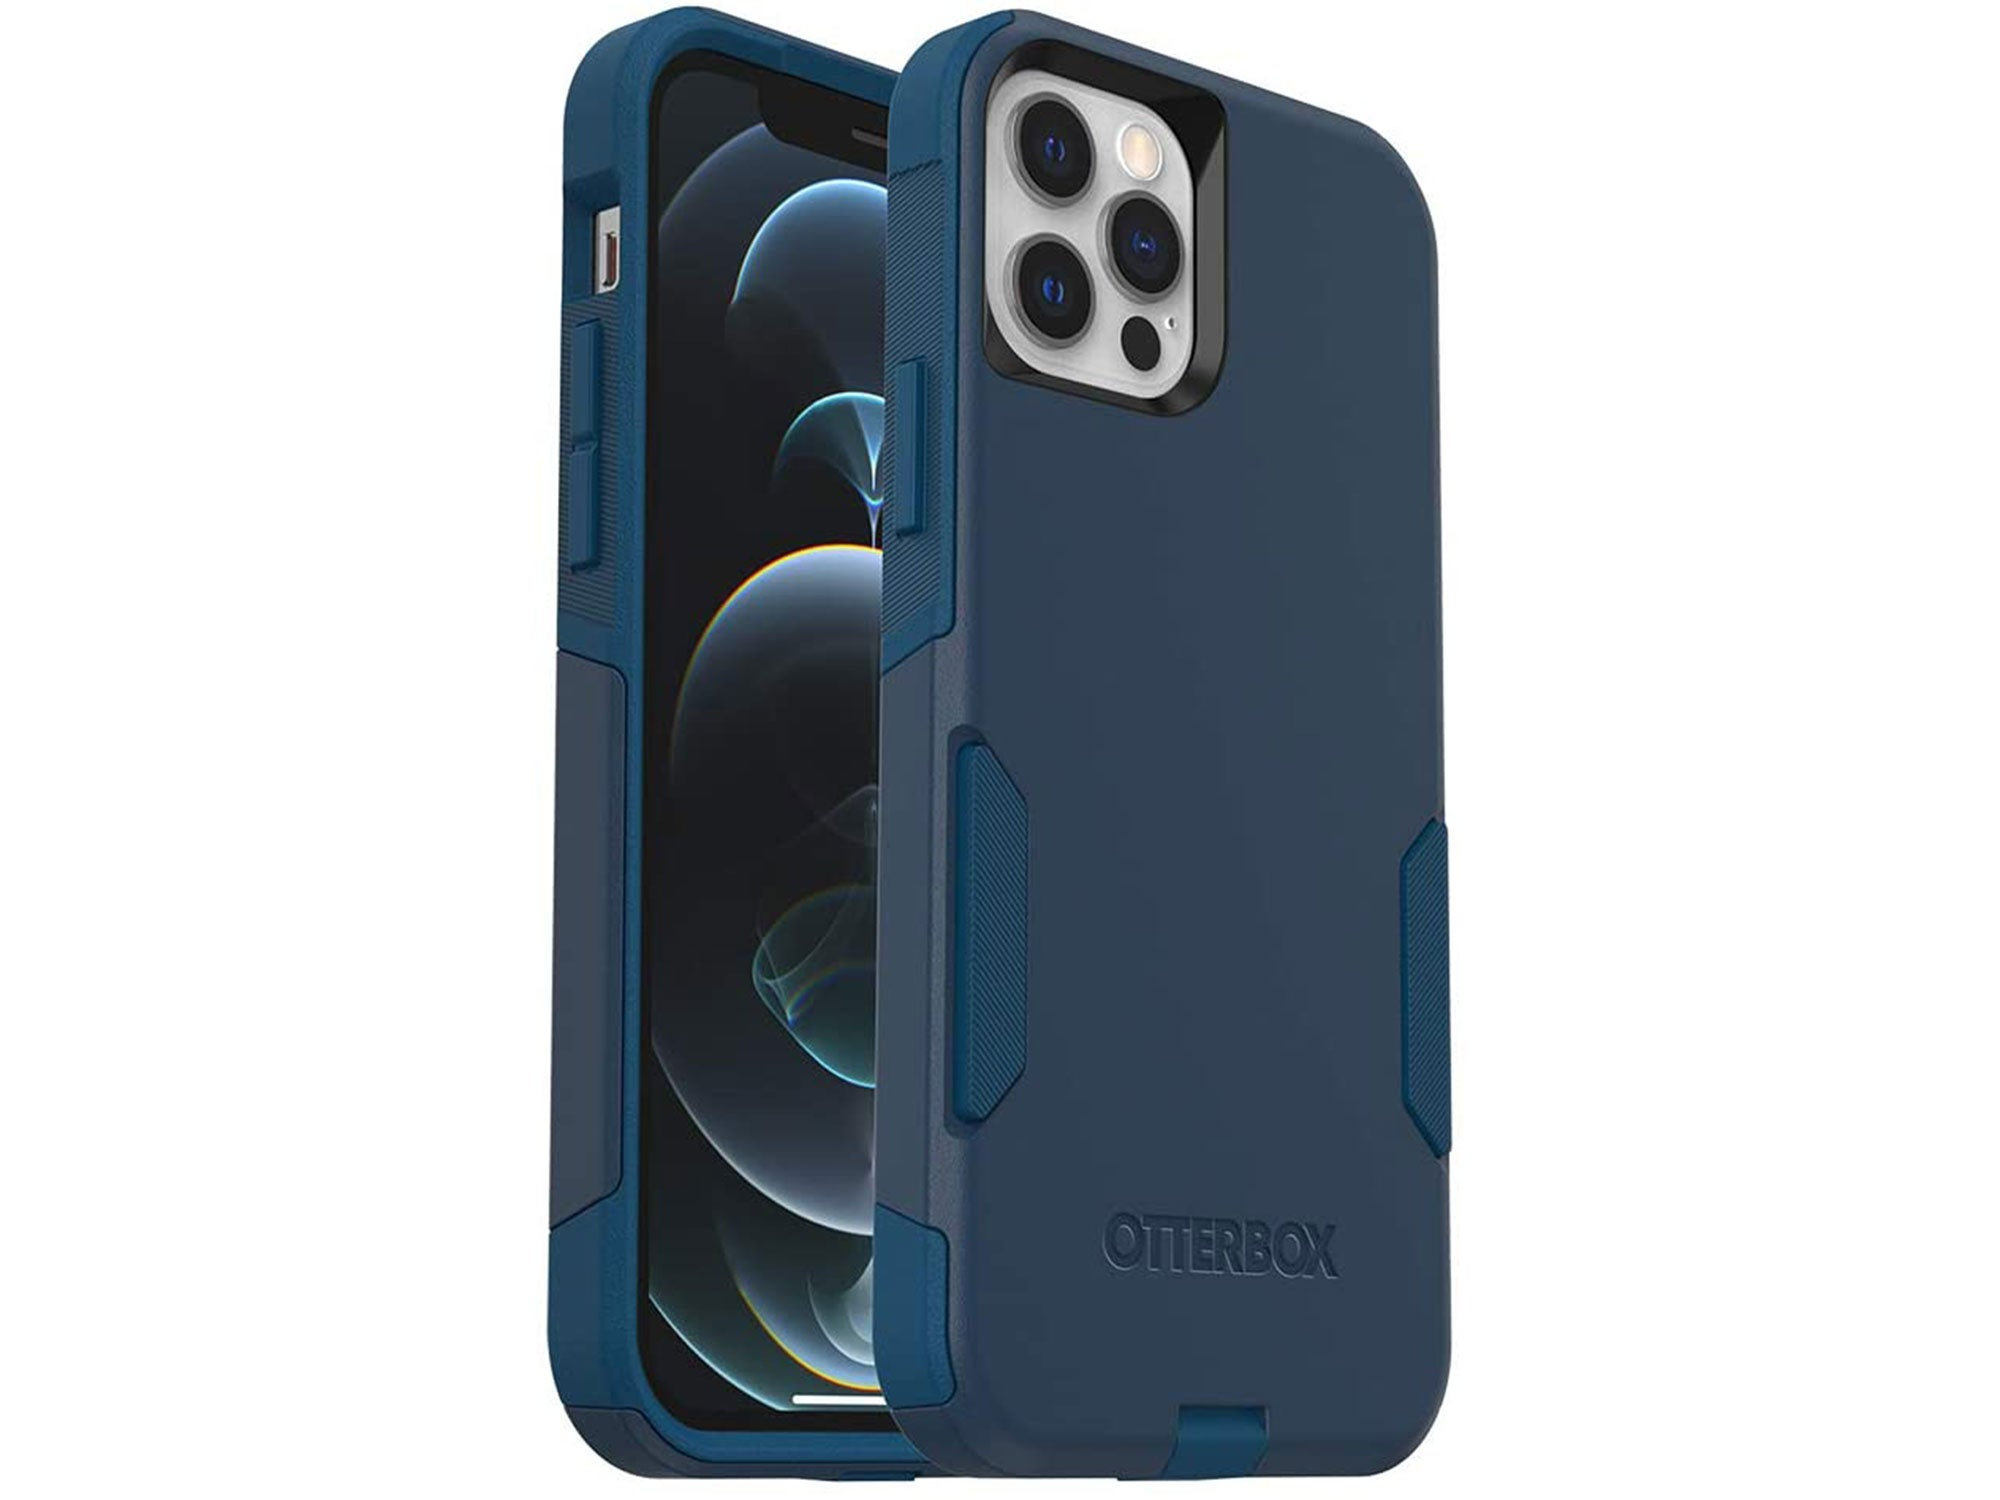 OtterBox Commuter Series Case for iPhone 12 & iPhone 12 Pro - Bespoke Way (Blazer Blue/Stormy Seas Blue)